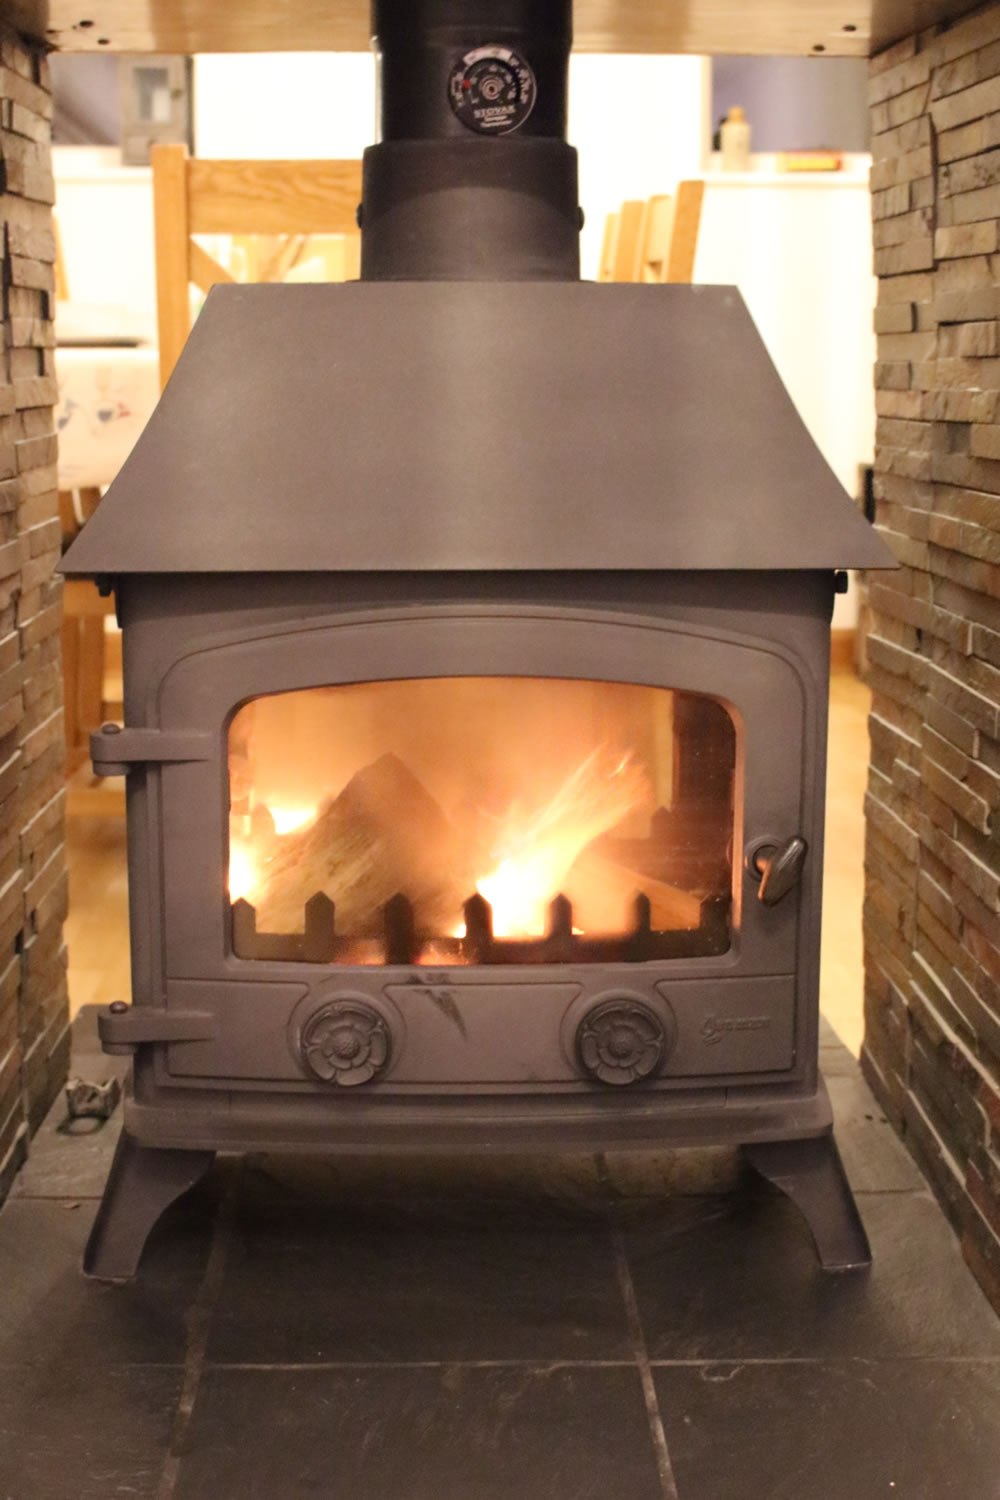 Double aspect wood burning stove ensuring comfort whatever the season!